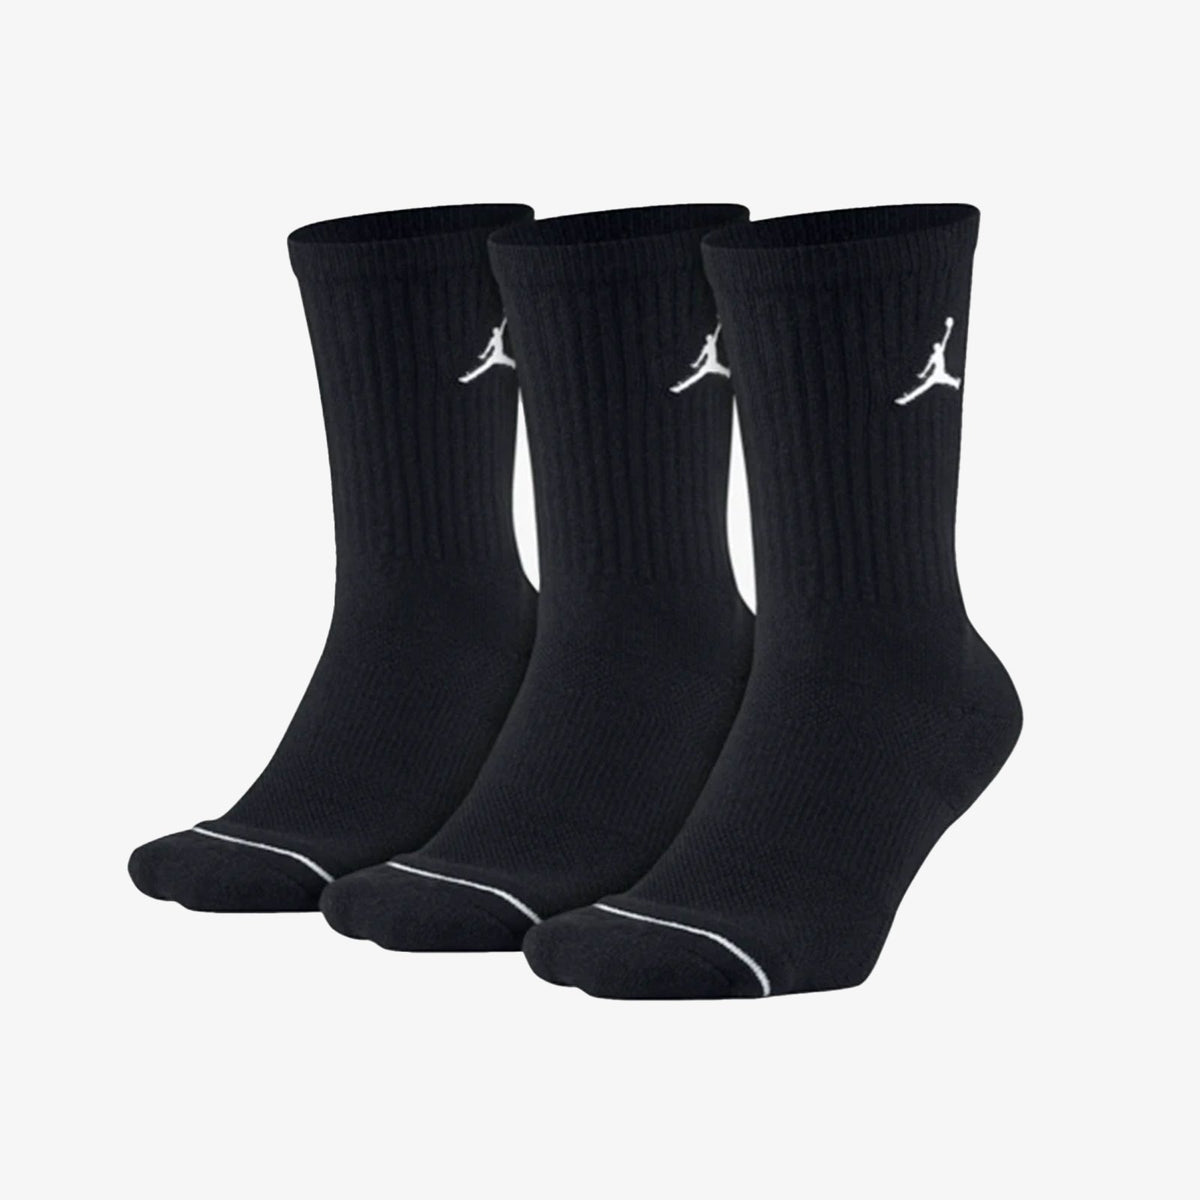 Jumpman Crew Socks (3 Pack) - Black